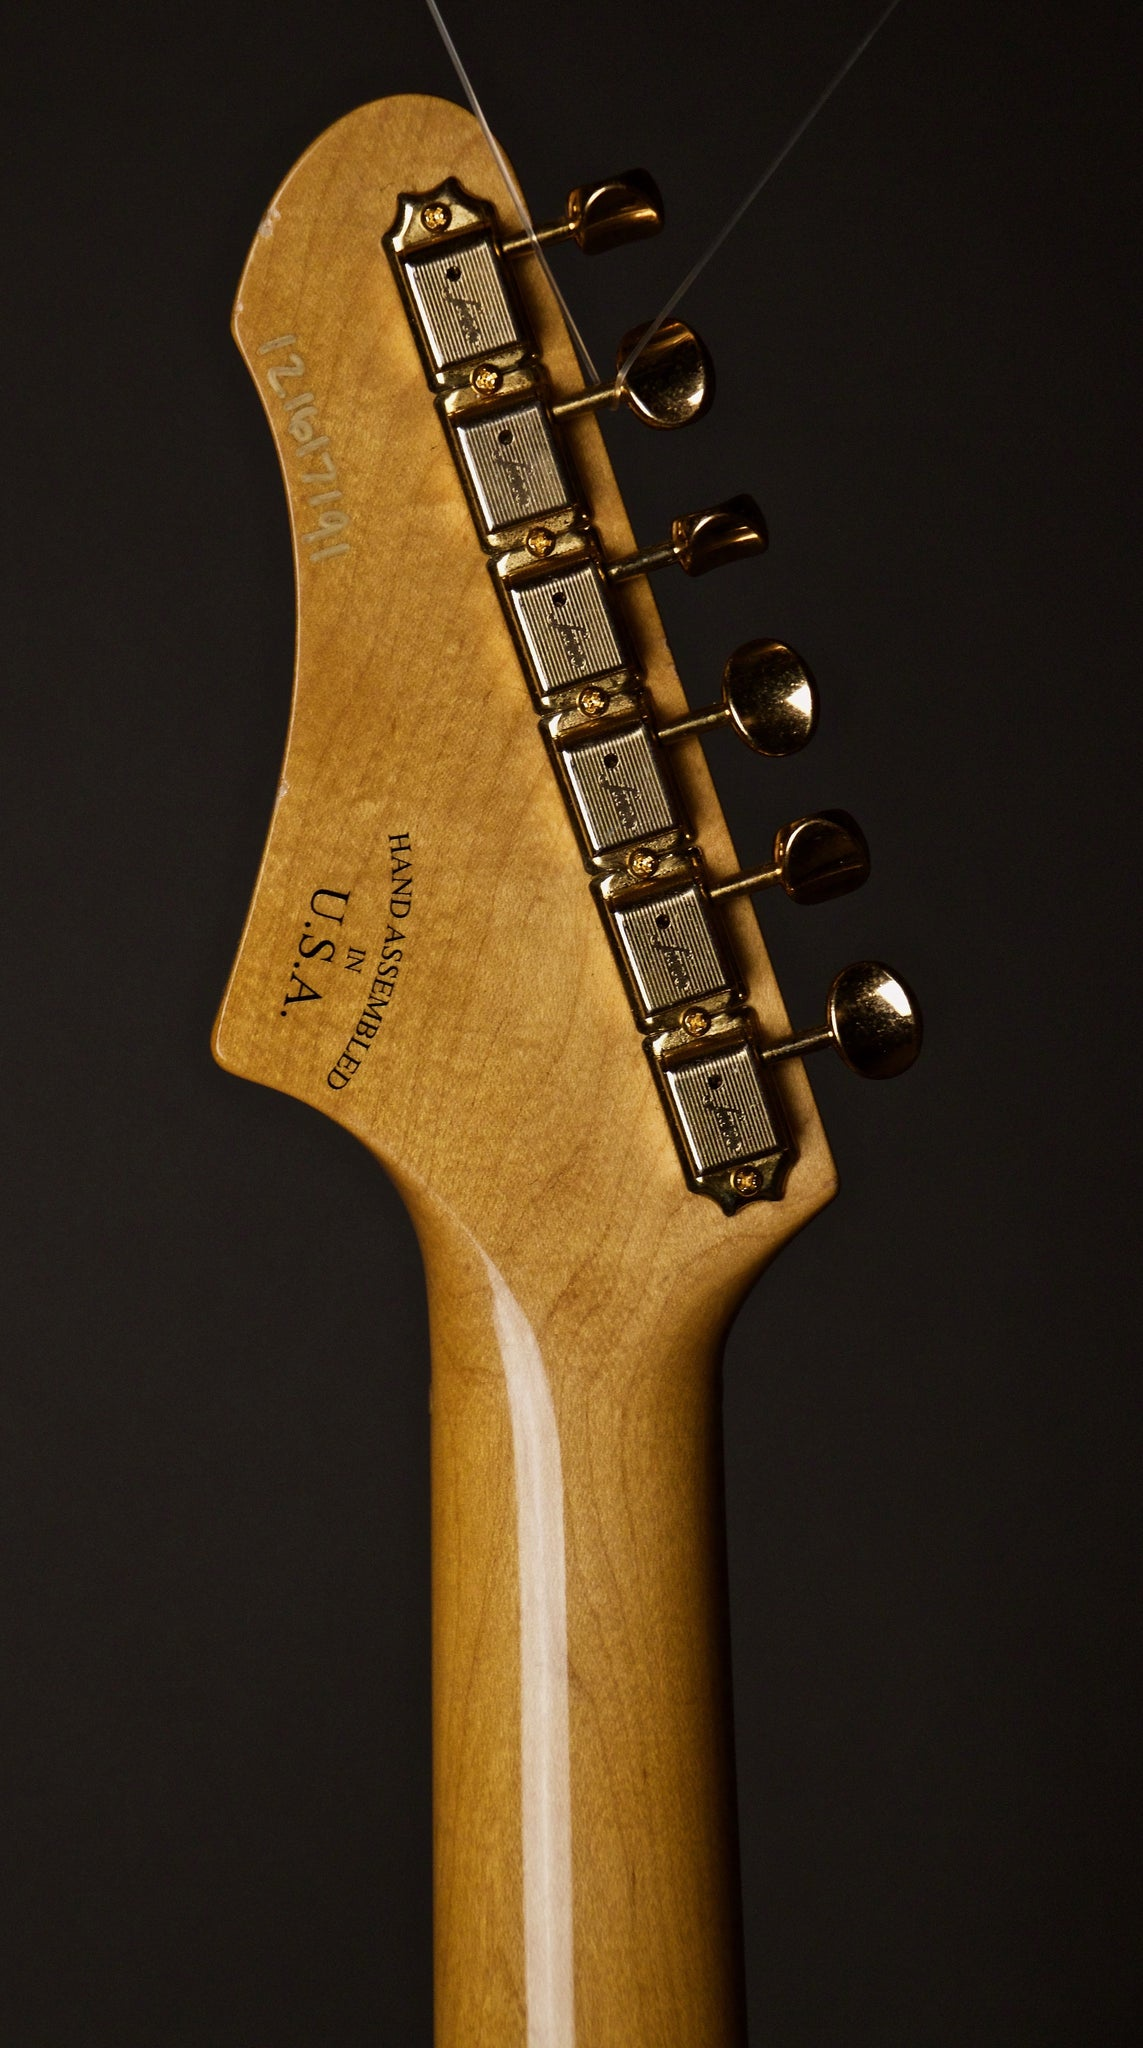 Fano Alt De Facto GF6 Electric Guitar Headstock Back